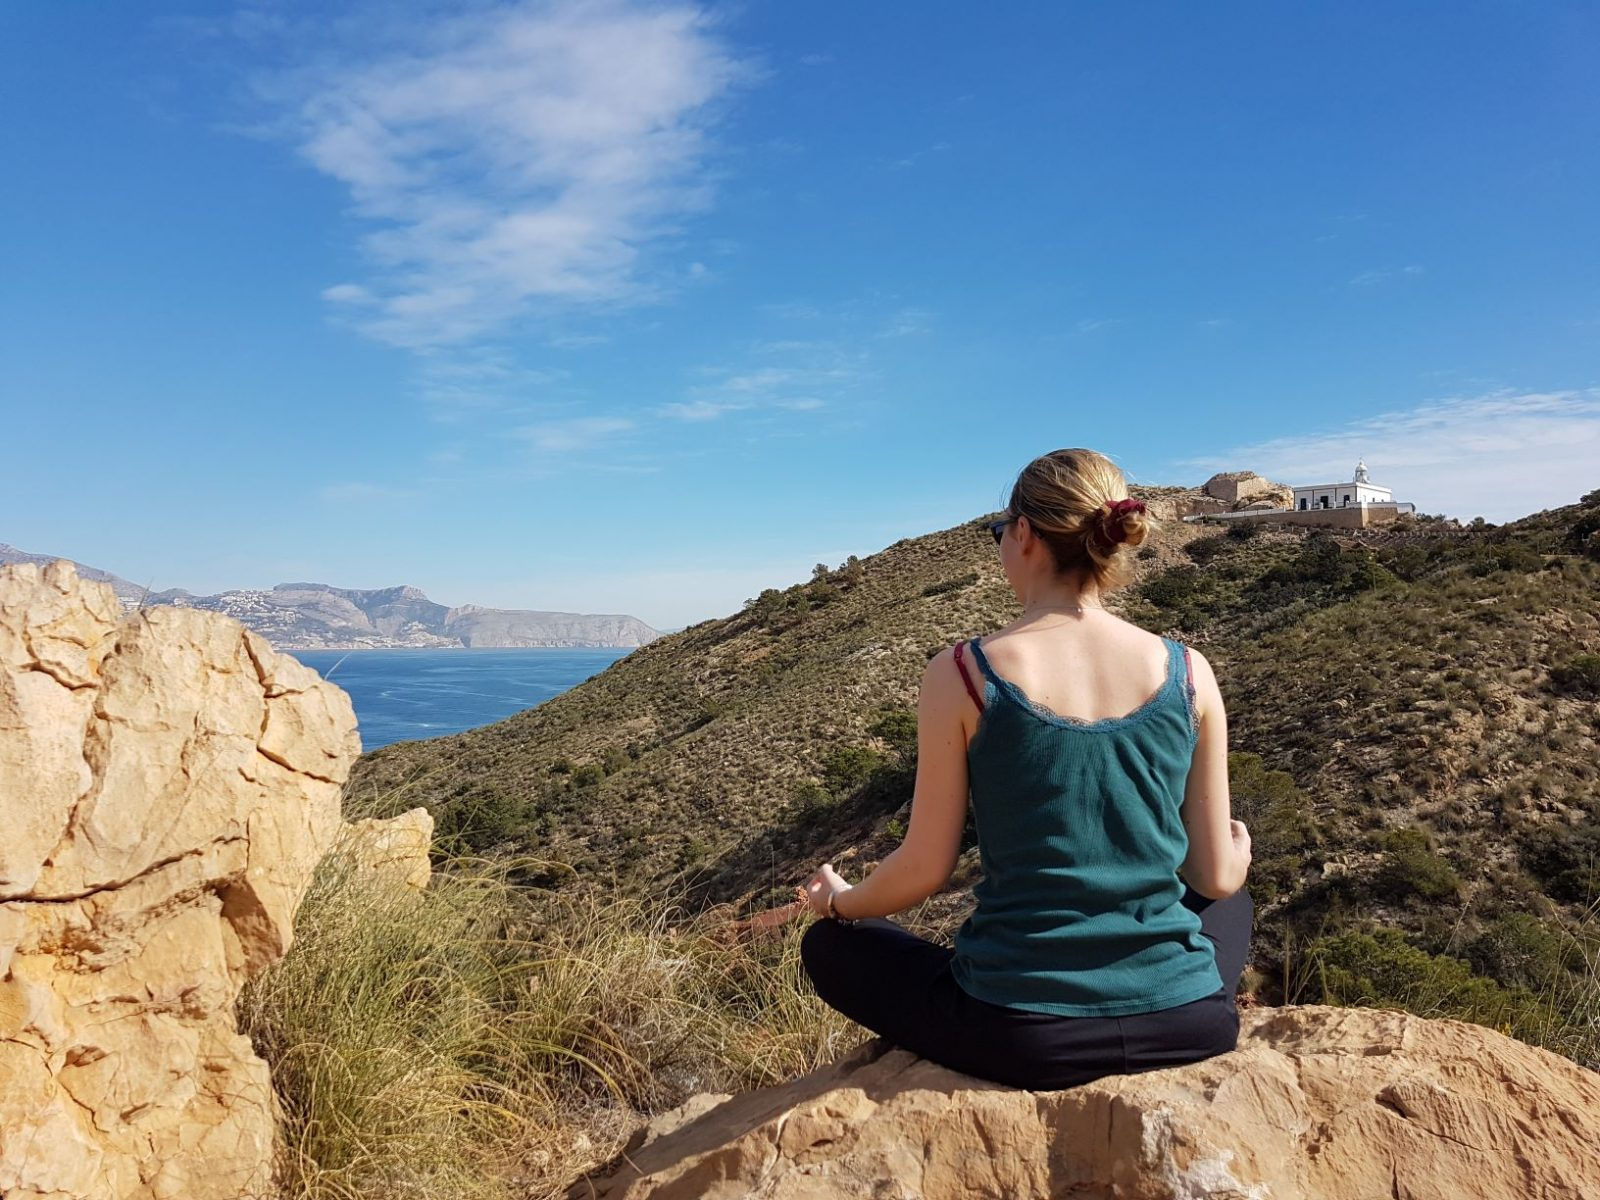 Meditation to reconnect with yourself